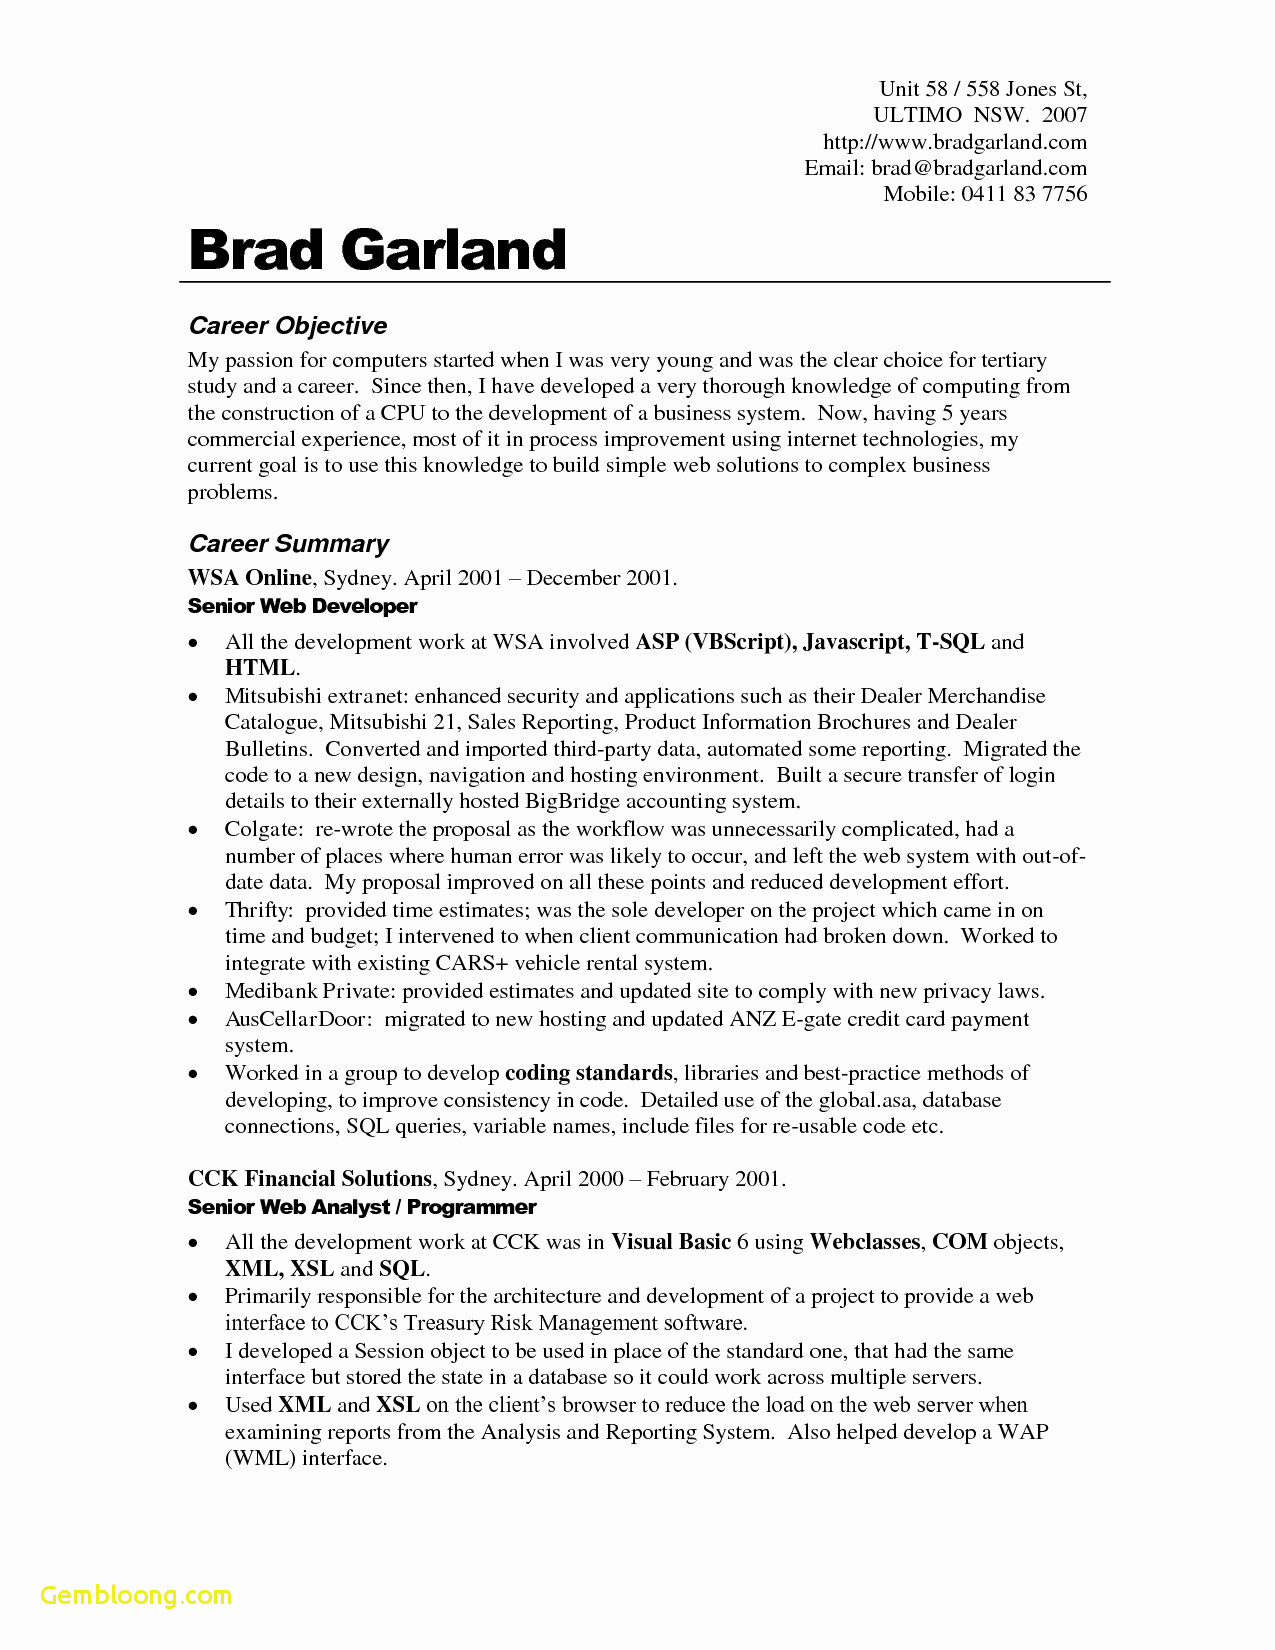 Free Modern Cover Letter Template - Free Modern Resume Template Download Od Consultant Cover Letter